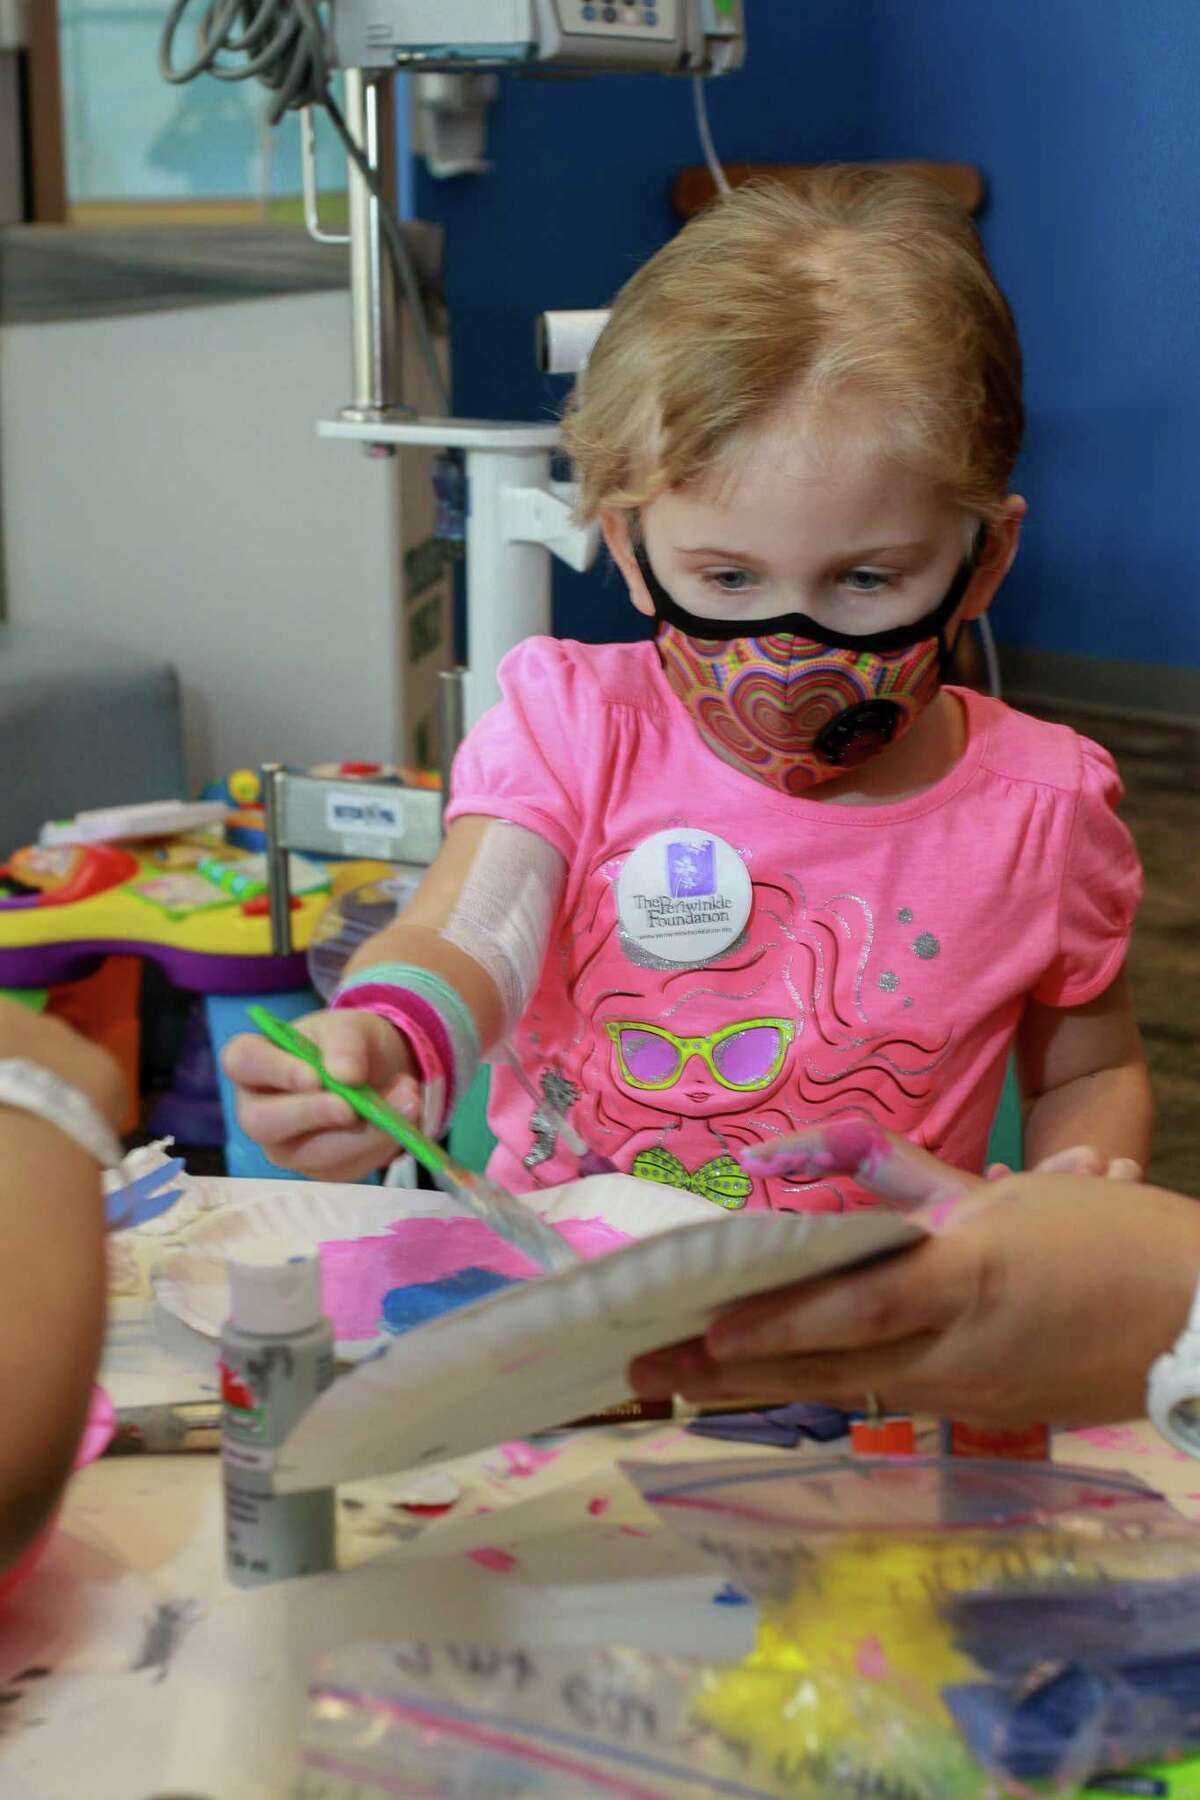 Evie Reed, 5, doing Animal Arts and Crafts at Camp Periwinkle Days. Camp Periwinkle Days transforms the Texas Children's Cancer and Hematology Centers waiting rooms into a two-day camp with games, prizes and activities to enrich the lives of some 500 children challenged by cancer under care at the hospital in Houston on June 17, 2016.